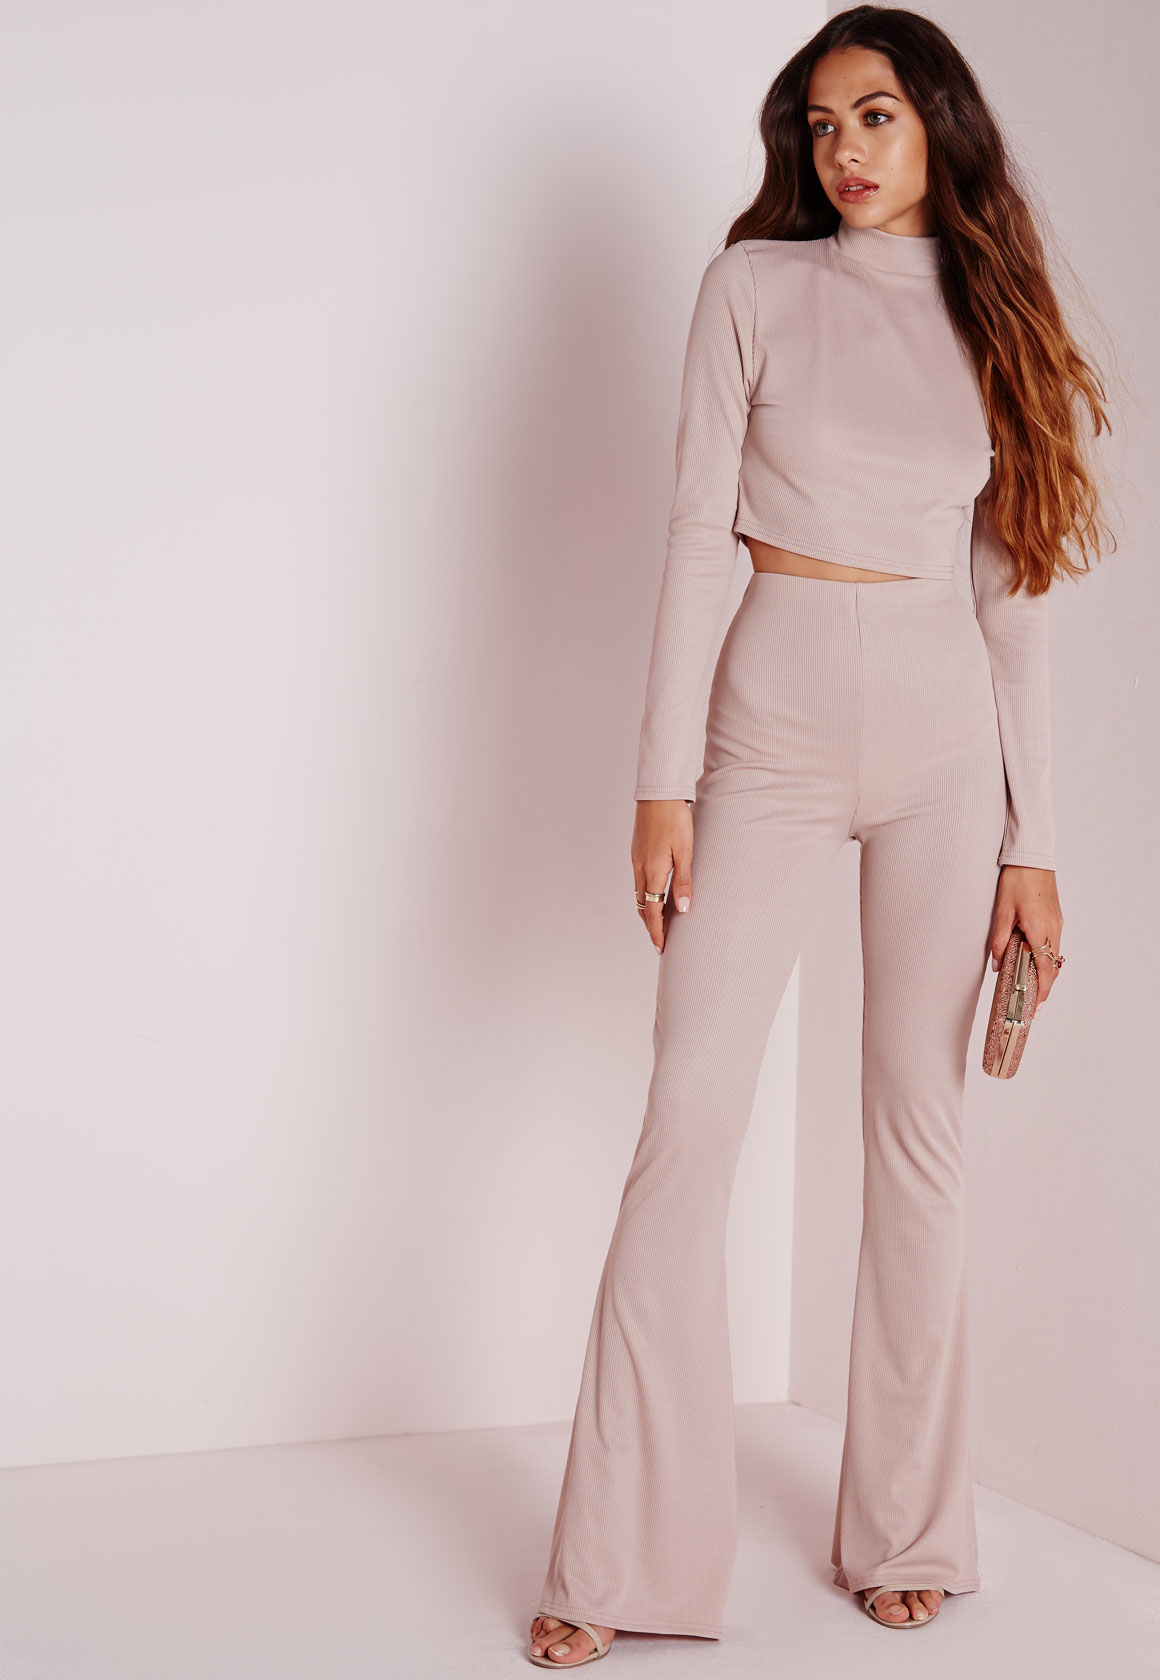 Lyst - Missguided Ribbed Wide Leg Trousers Nude in Natural 37fe4774dd6a